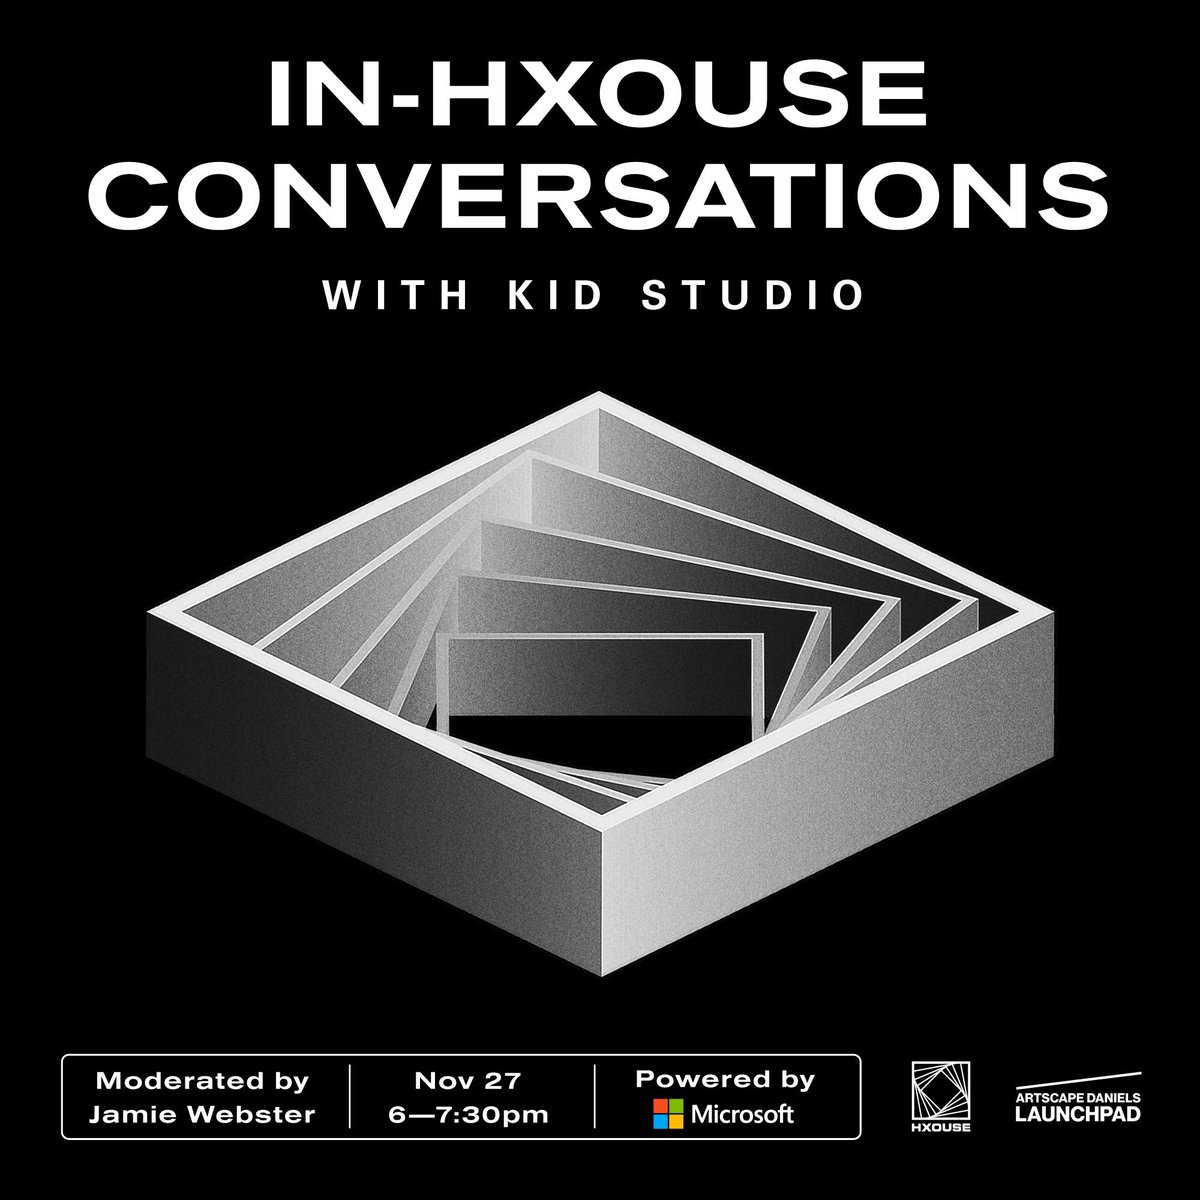 IN-HXOUSE CONVERSATIONS WITH KID STUDIO| NOV 27 | TICKETS — LINK IN BIO